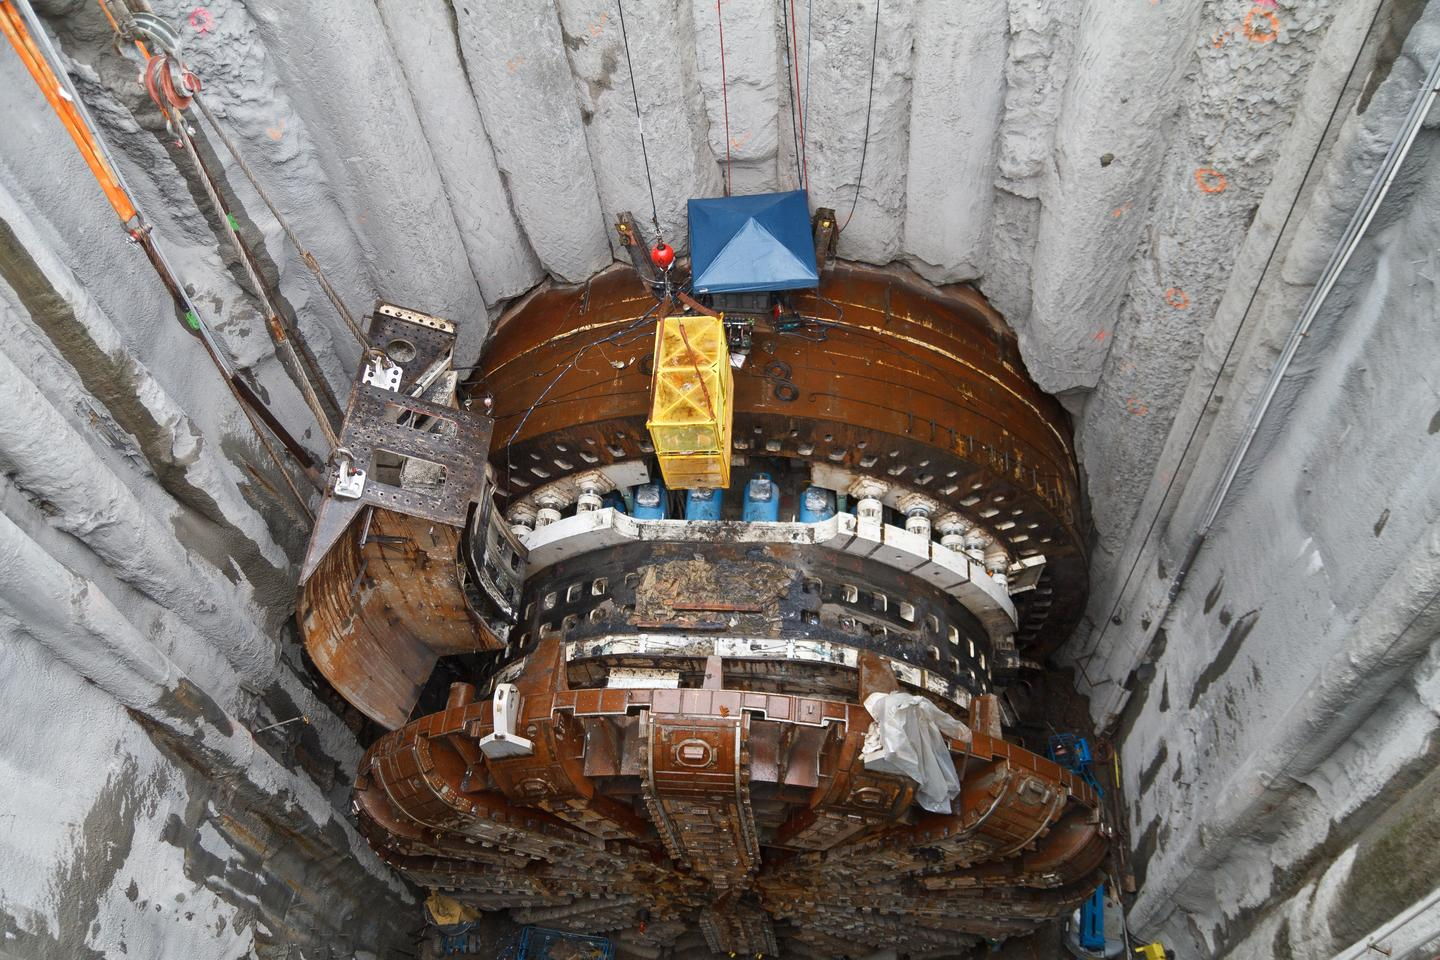 Bertha's shield being dismantled